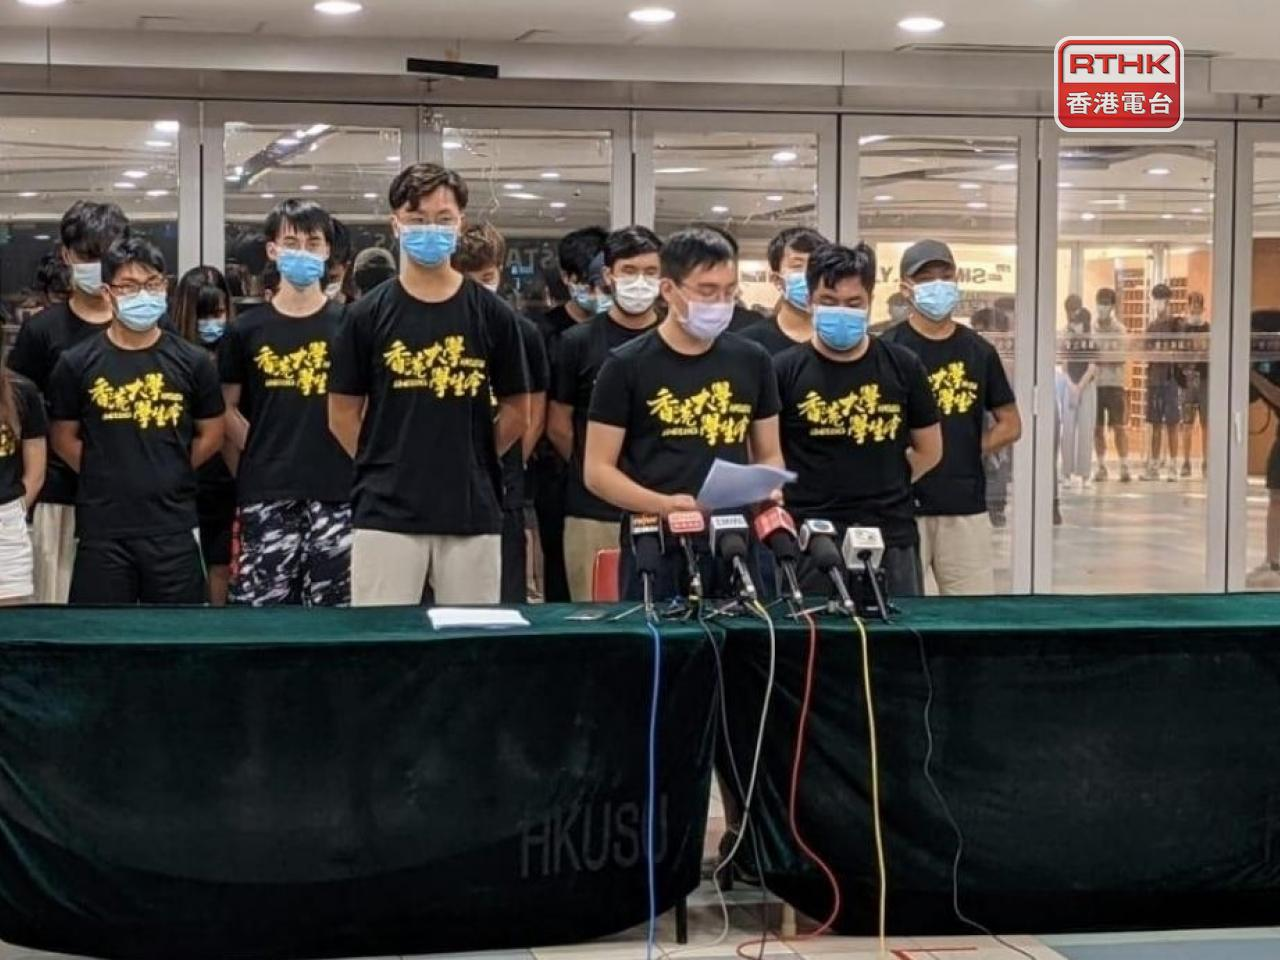 HKU's decision may lead to crisis: ex-student leader